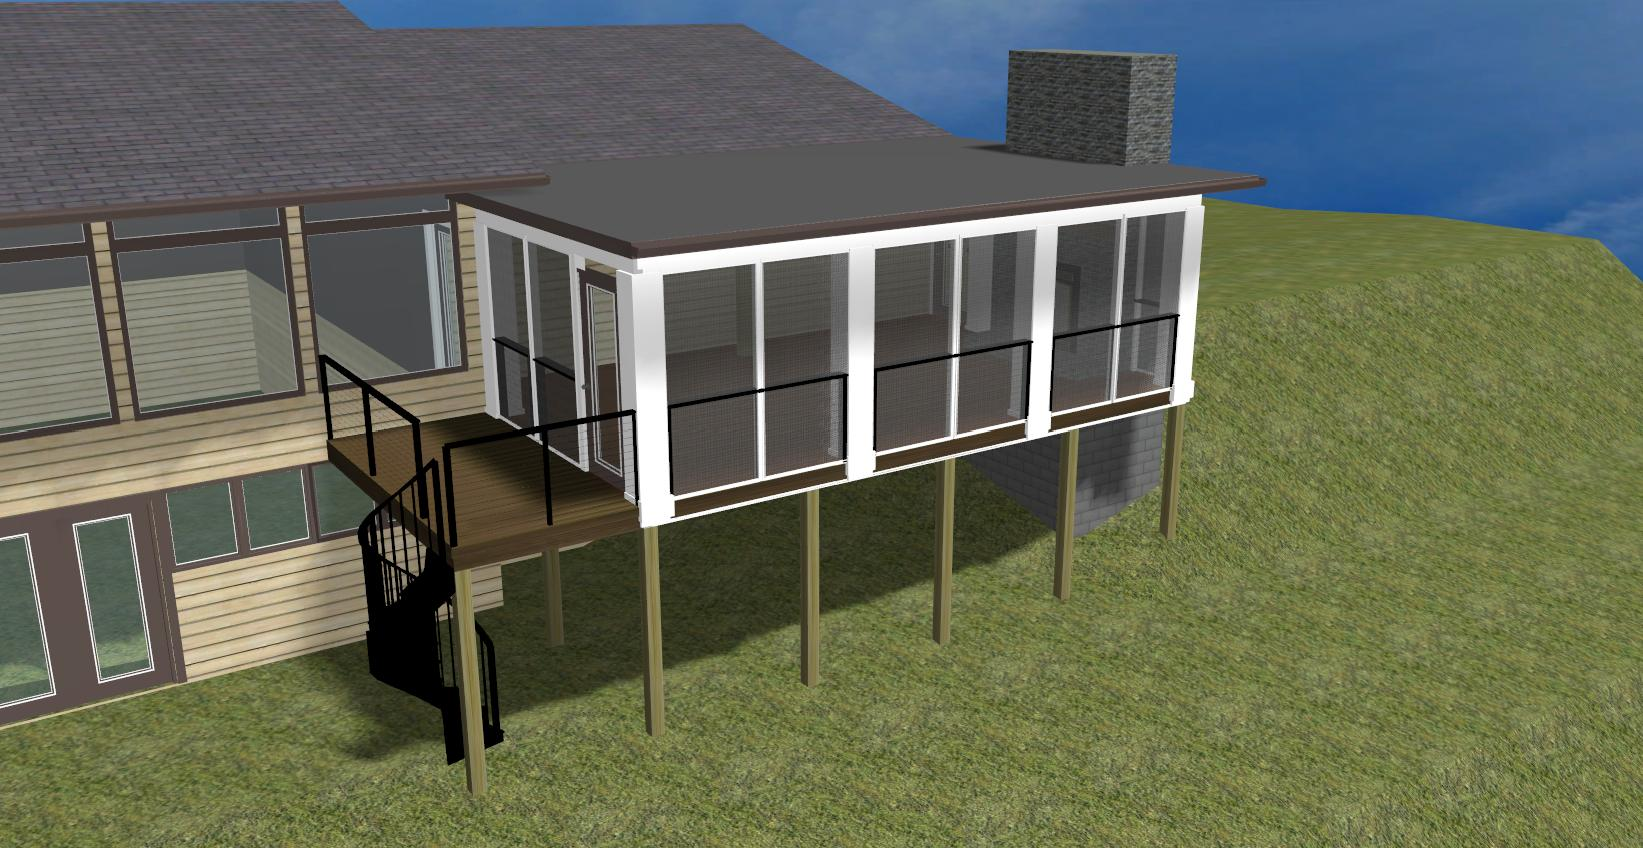 Tying a porch roof shed into existing roof ask home design for Shed roof porch designs